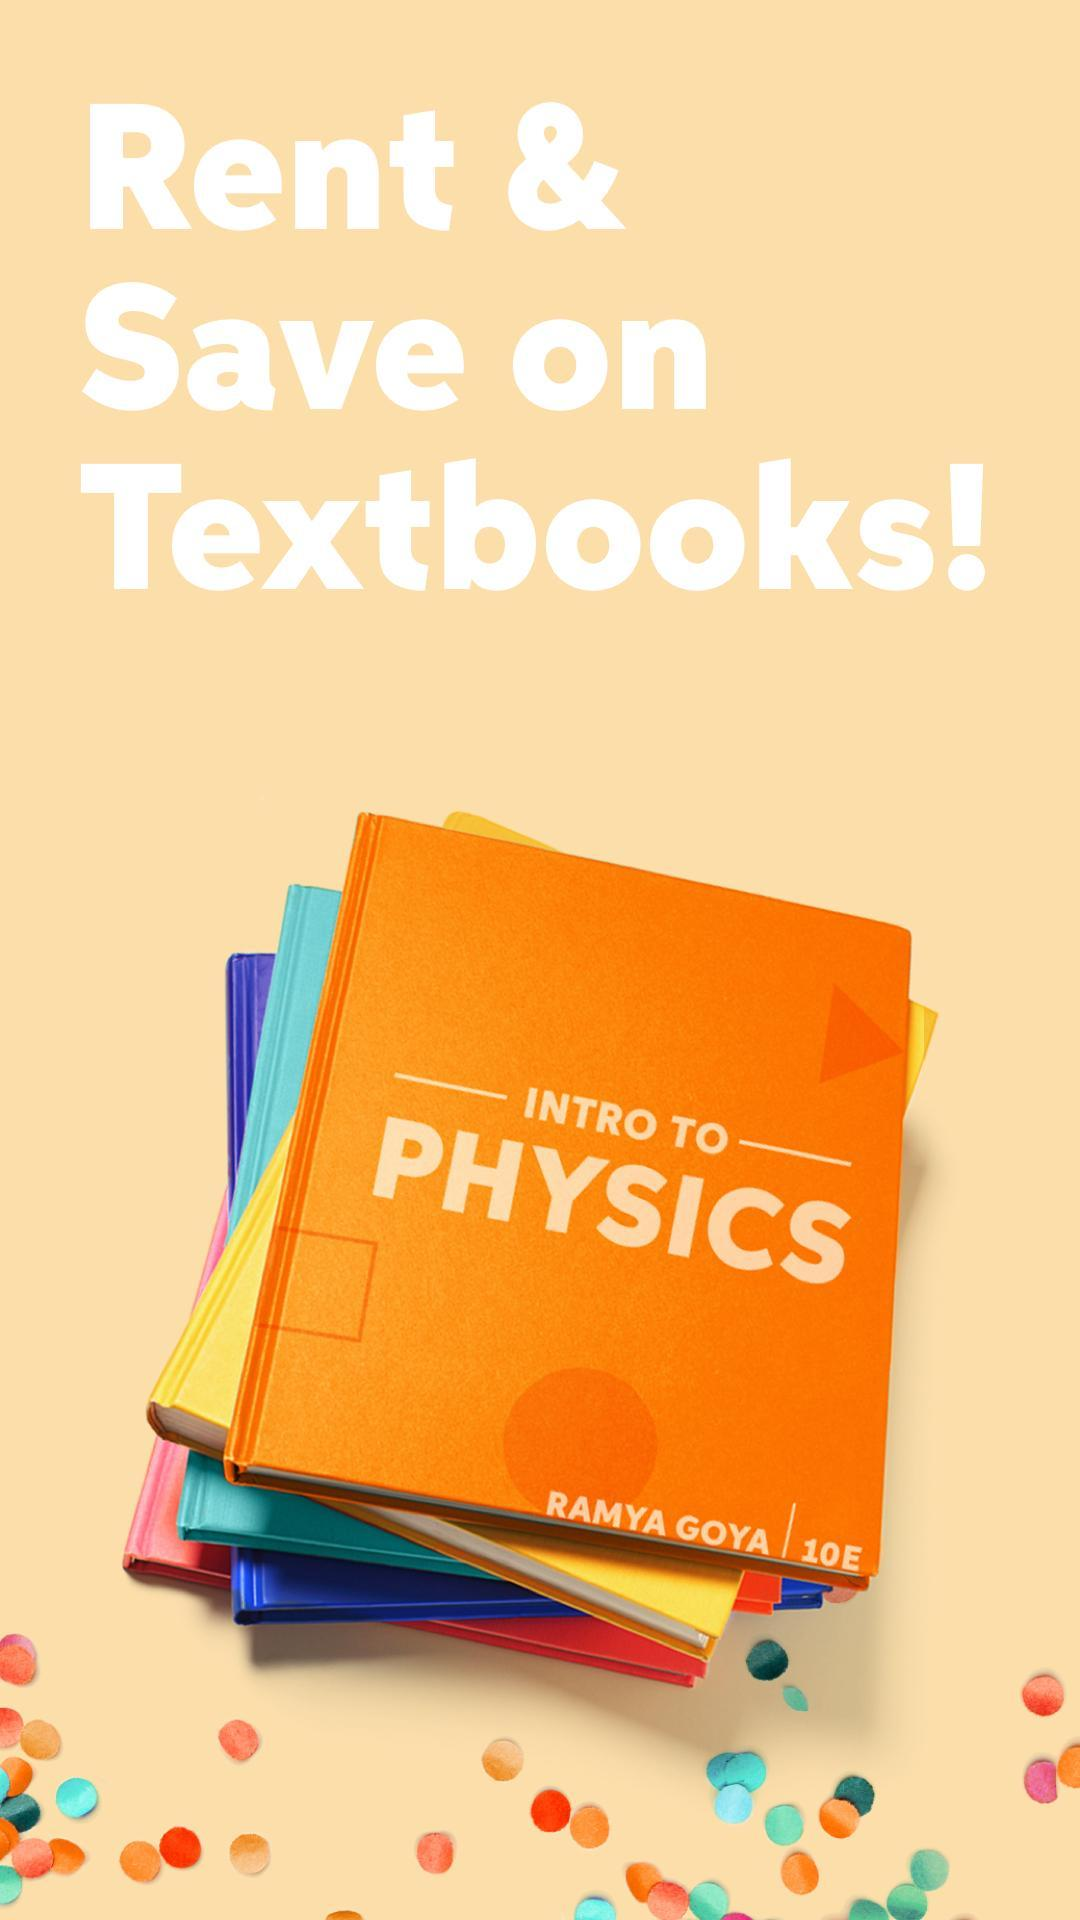 Chegg Books for Android - APK Download